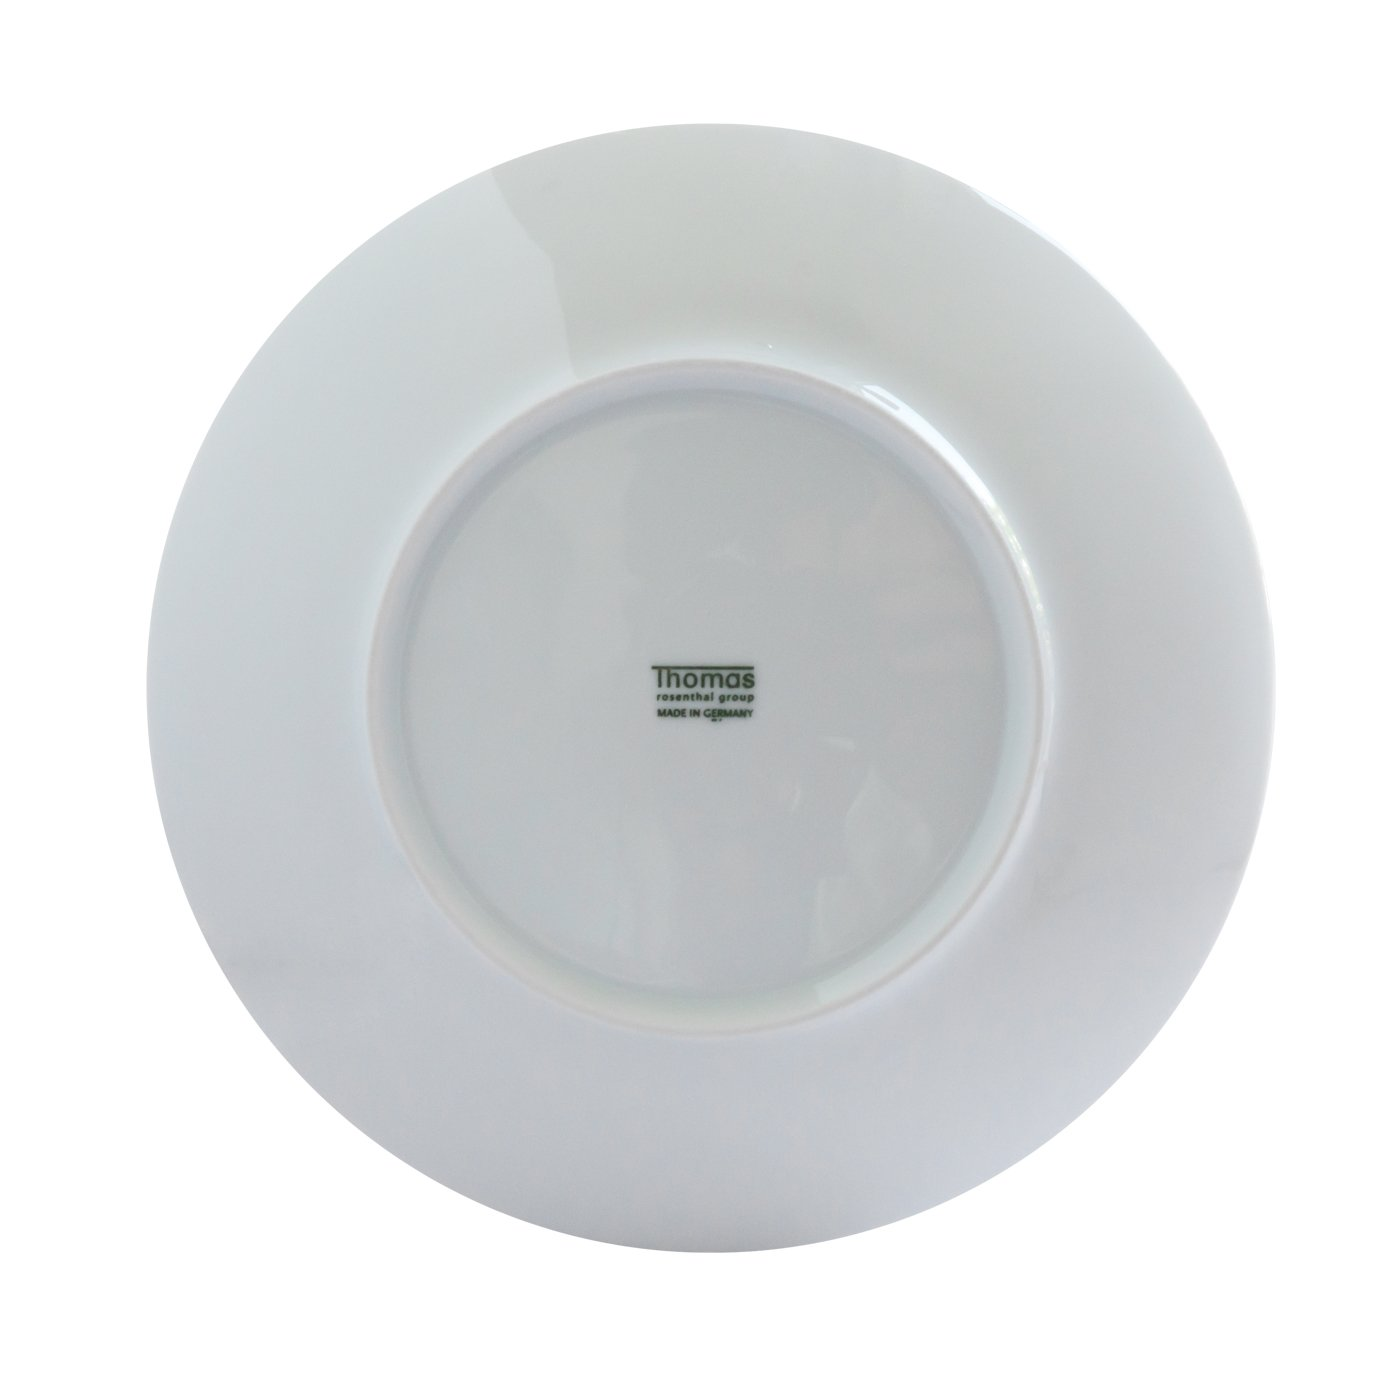 Amazon.com | Rosenthal Thomas Loft White Dinnerware Set | Modern Dishes including Dinner Plates Salad Plates Soup Plates and Mugs | Made of Porcelain | 16 ...  sc 1 st  Amazon.com & Amazon.com | Rosenthal Thomas Loft White Dinnerware Set | Modern ...